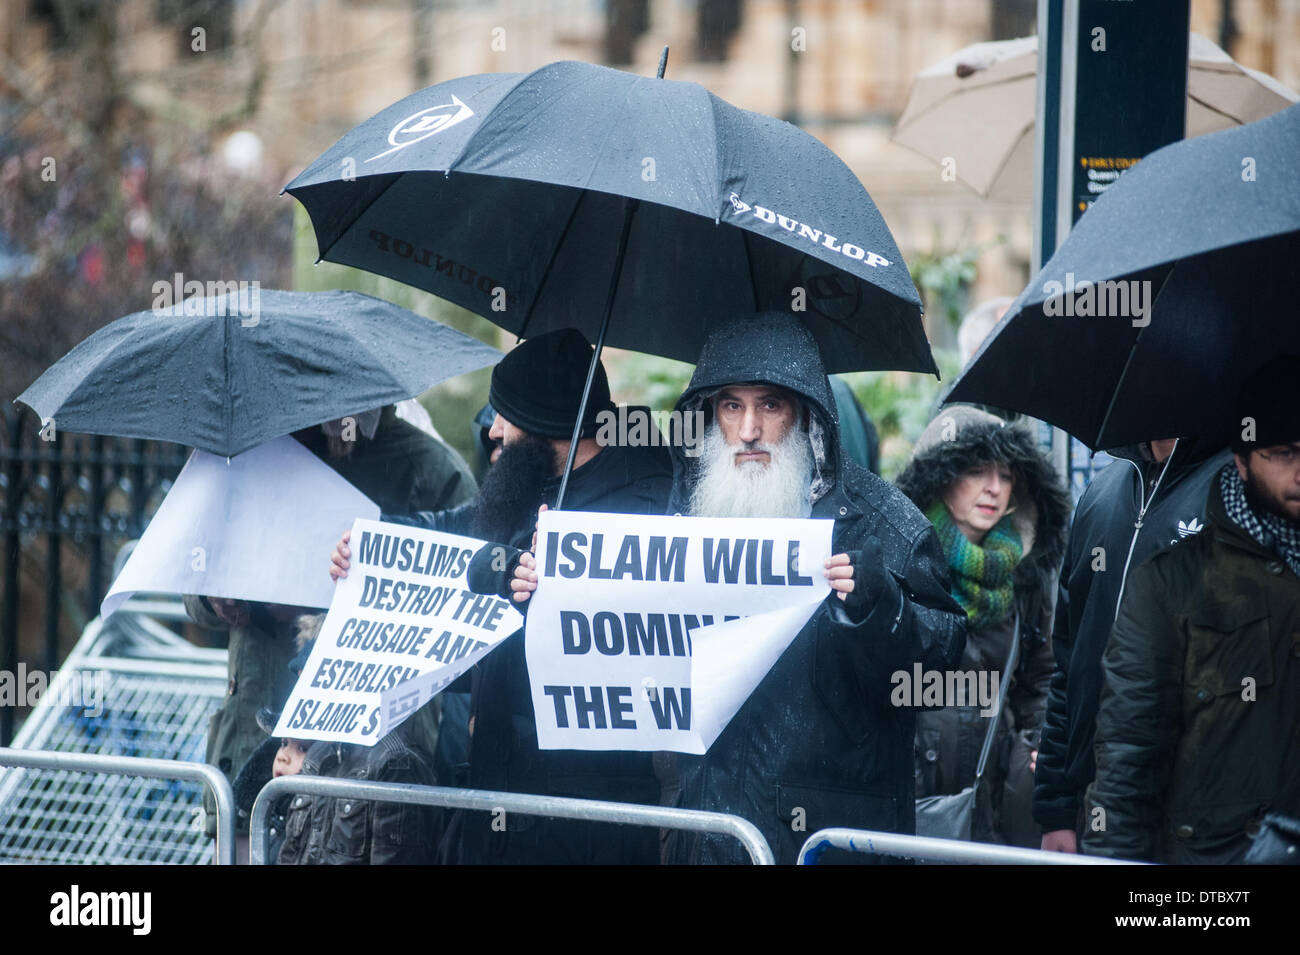 London, UK - 14 February 2014: a Muslim activist, holding a placard reading 'Islam willl dominate the World', demonstrates in Central London in support of Muslims allegedly slaughtered in the Central African Republic (CAR) by Christian vigilantes known as Anti-Balaka. Credit:  Piero Cruciatti/Alamy Live News - Stock Image